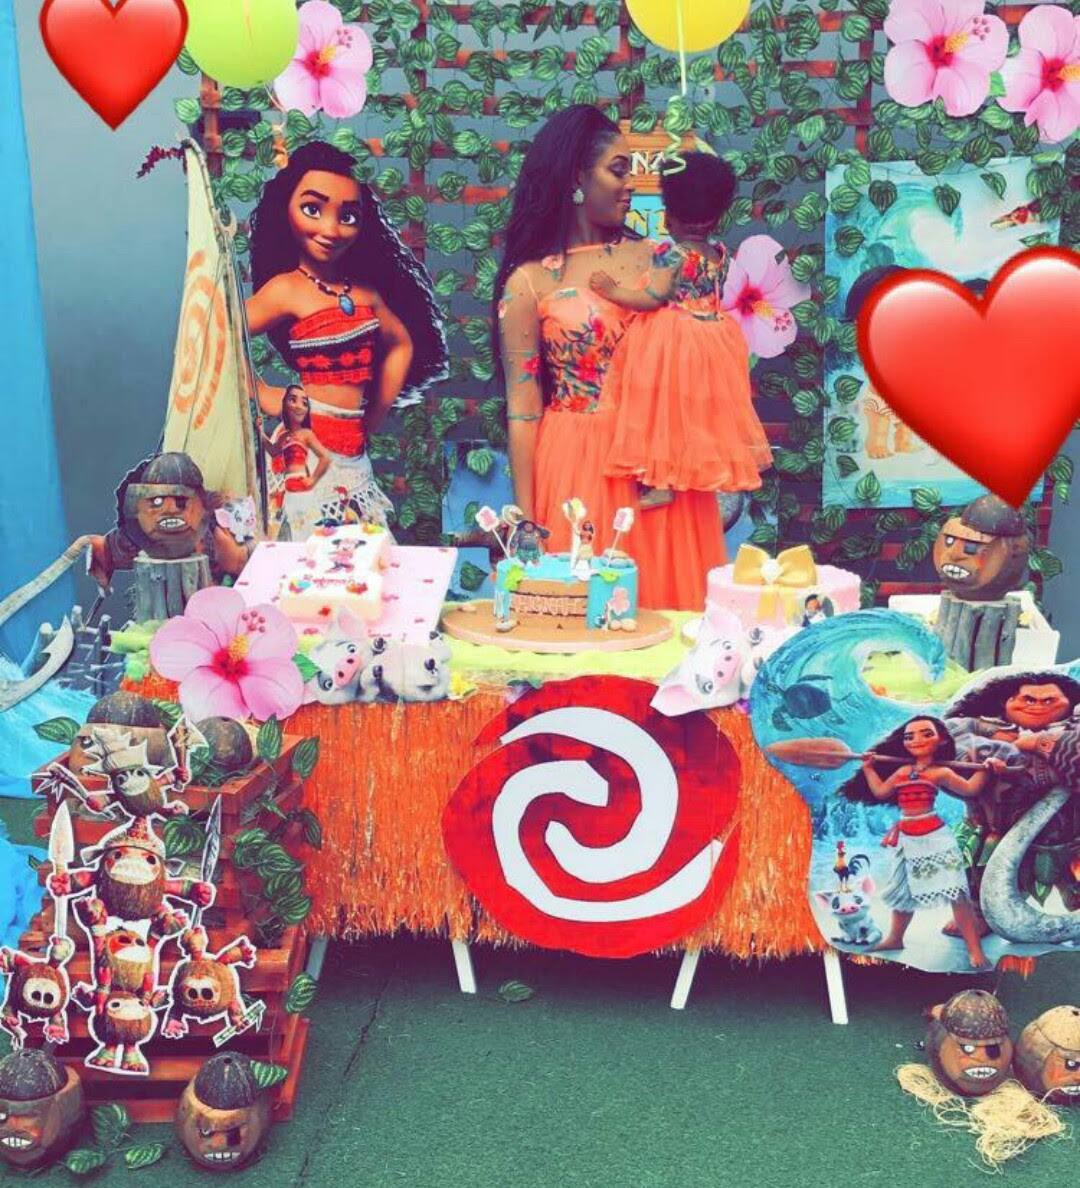 A Moana Themed Birthday Party Was Thrown By Dabota Lawson